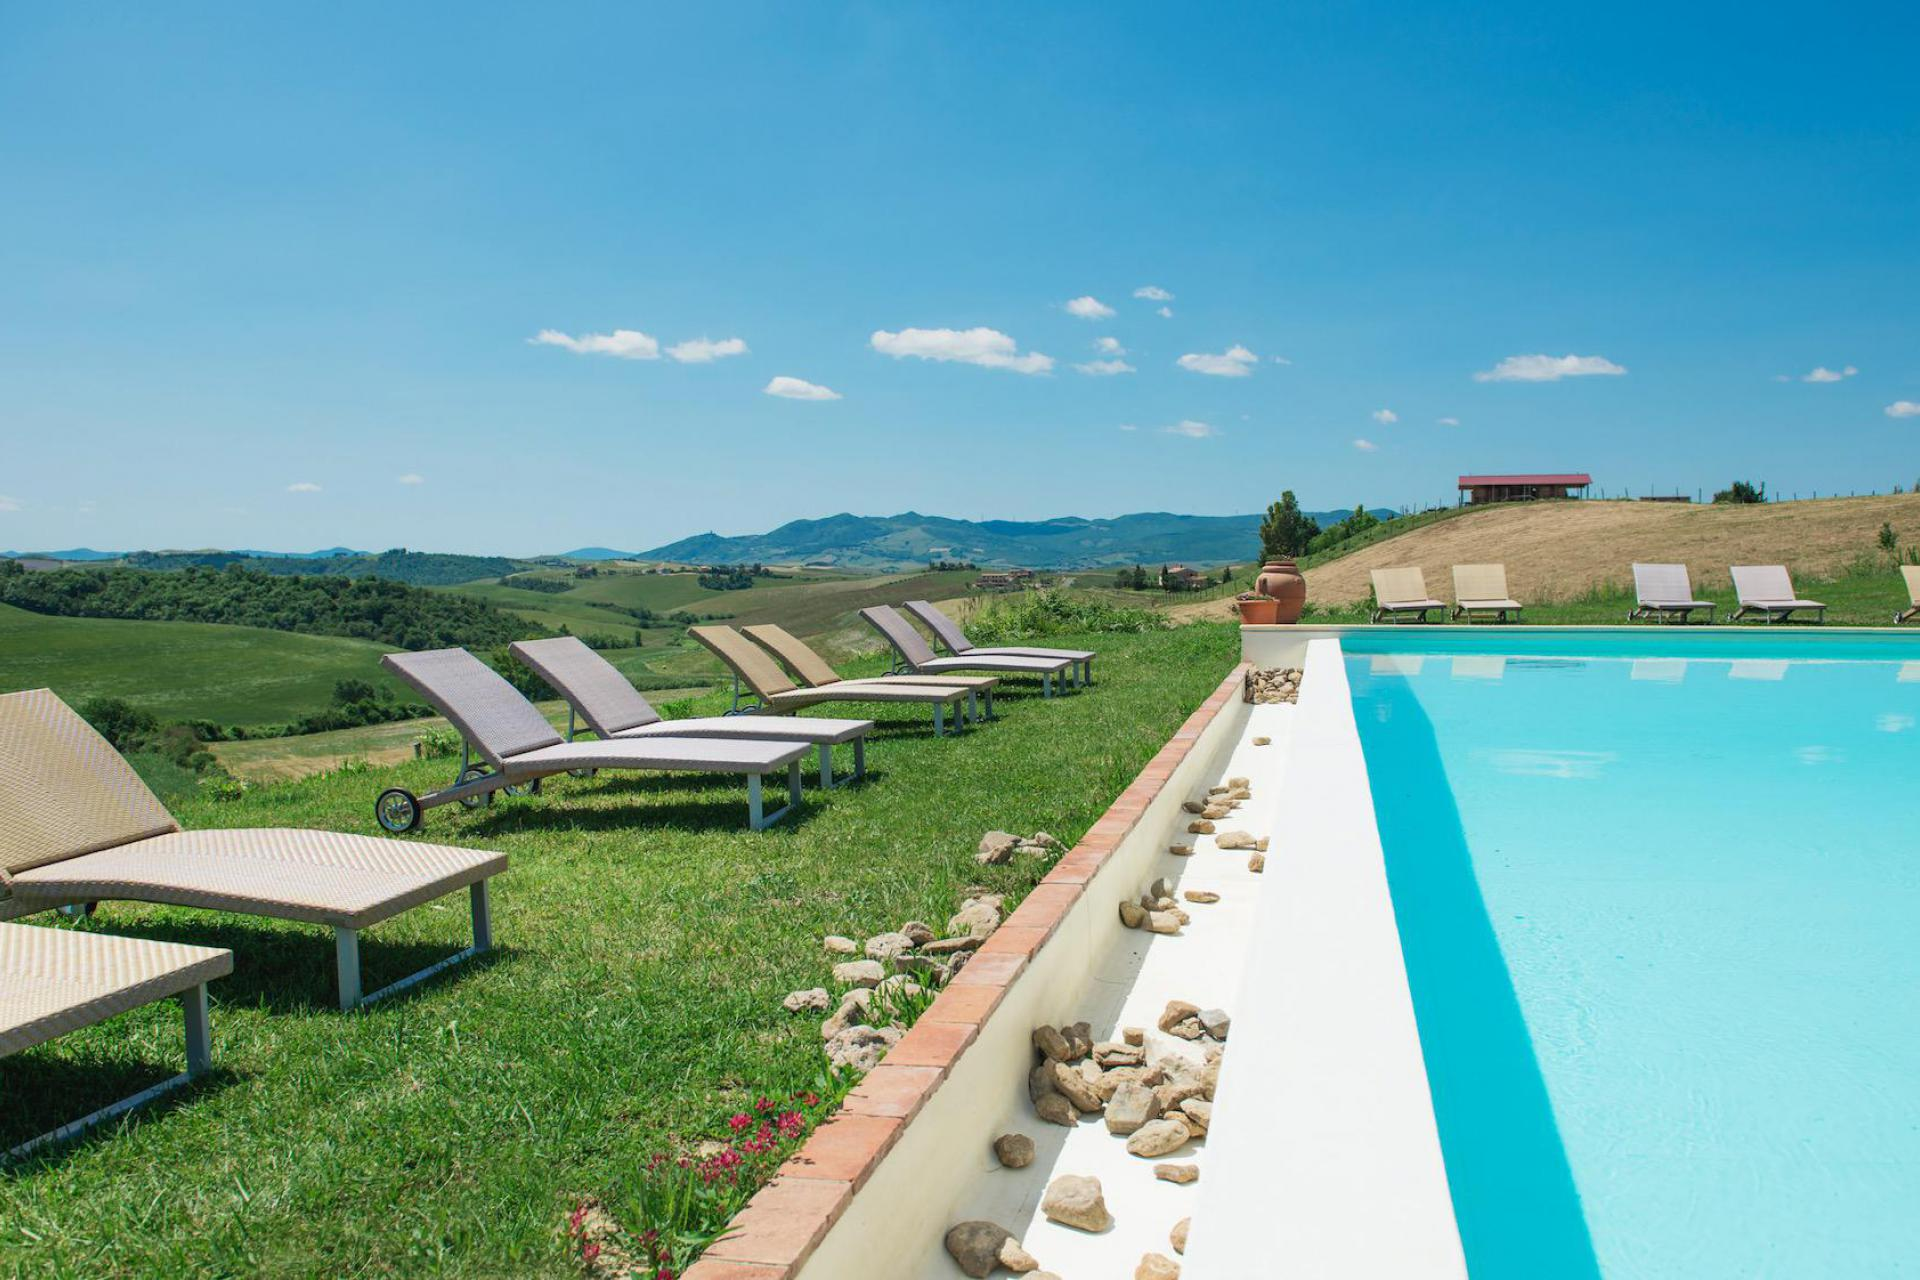 Agriturismo Tuscany Fun agriturismo in Tuscany with panoramic swimming pool